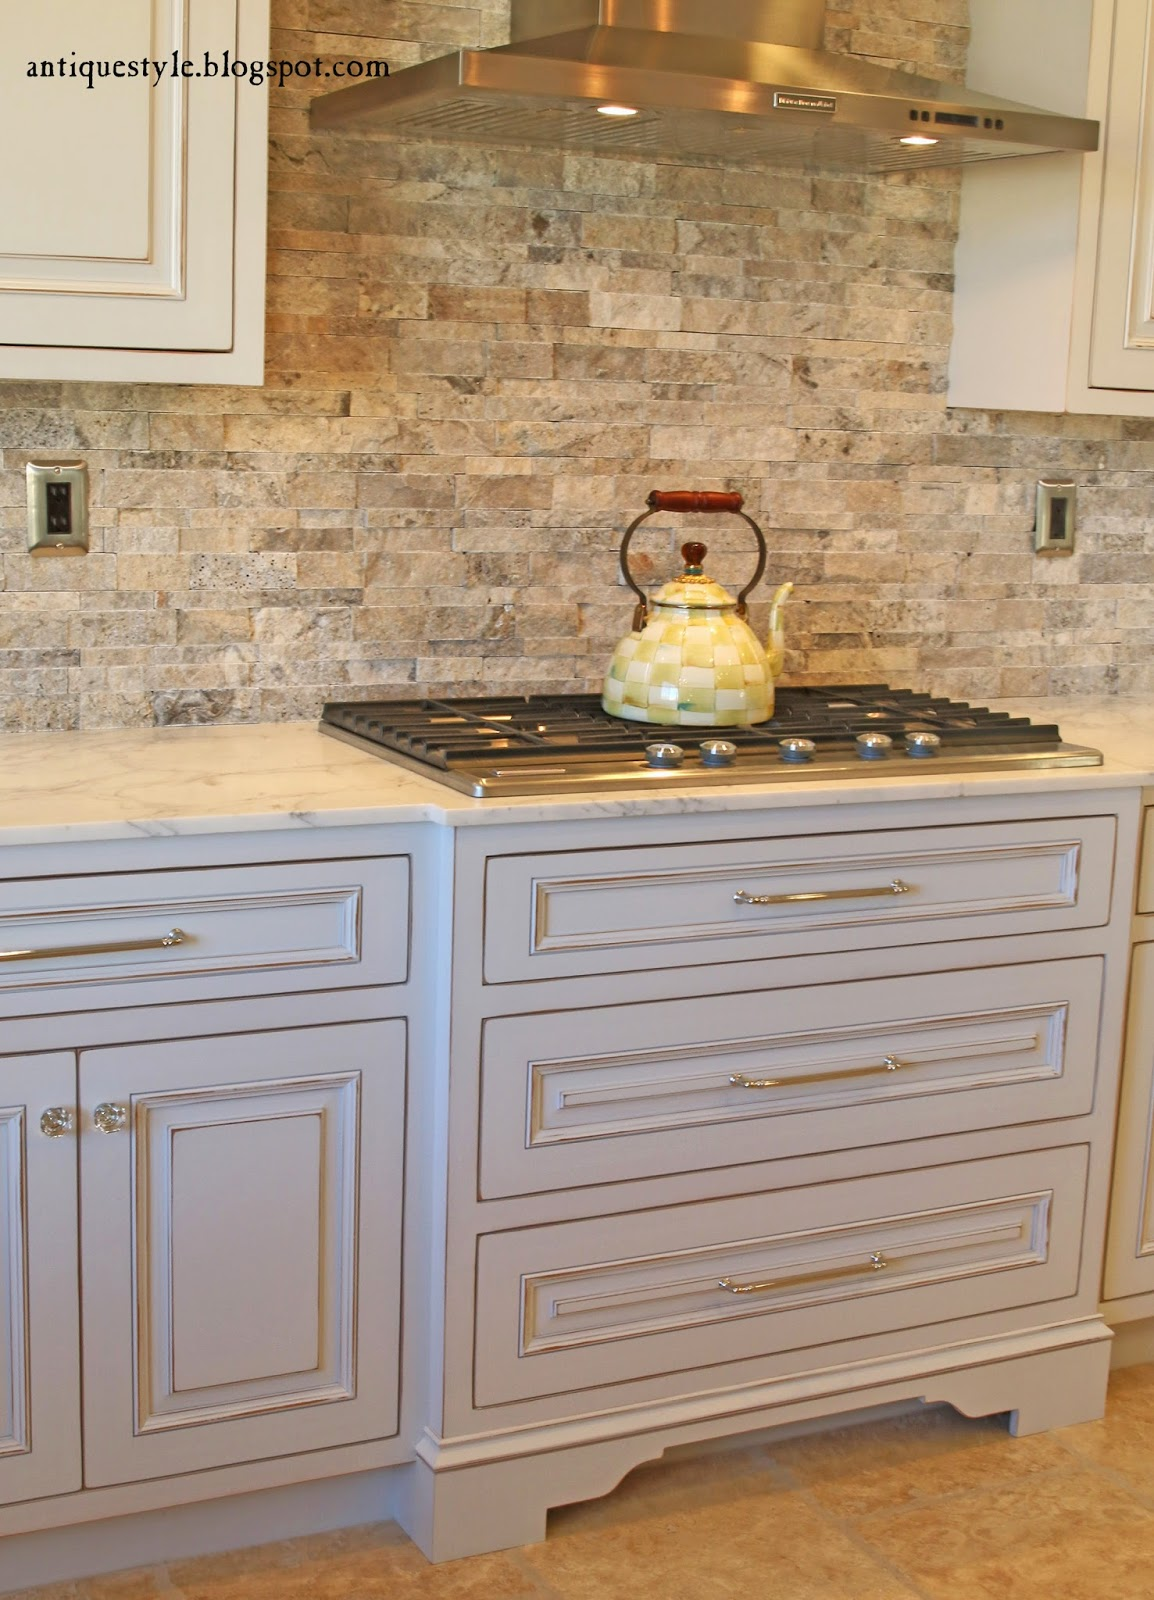 Kitchen Island Kick Plate antique style: kitchen before & after